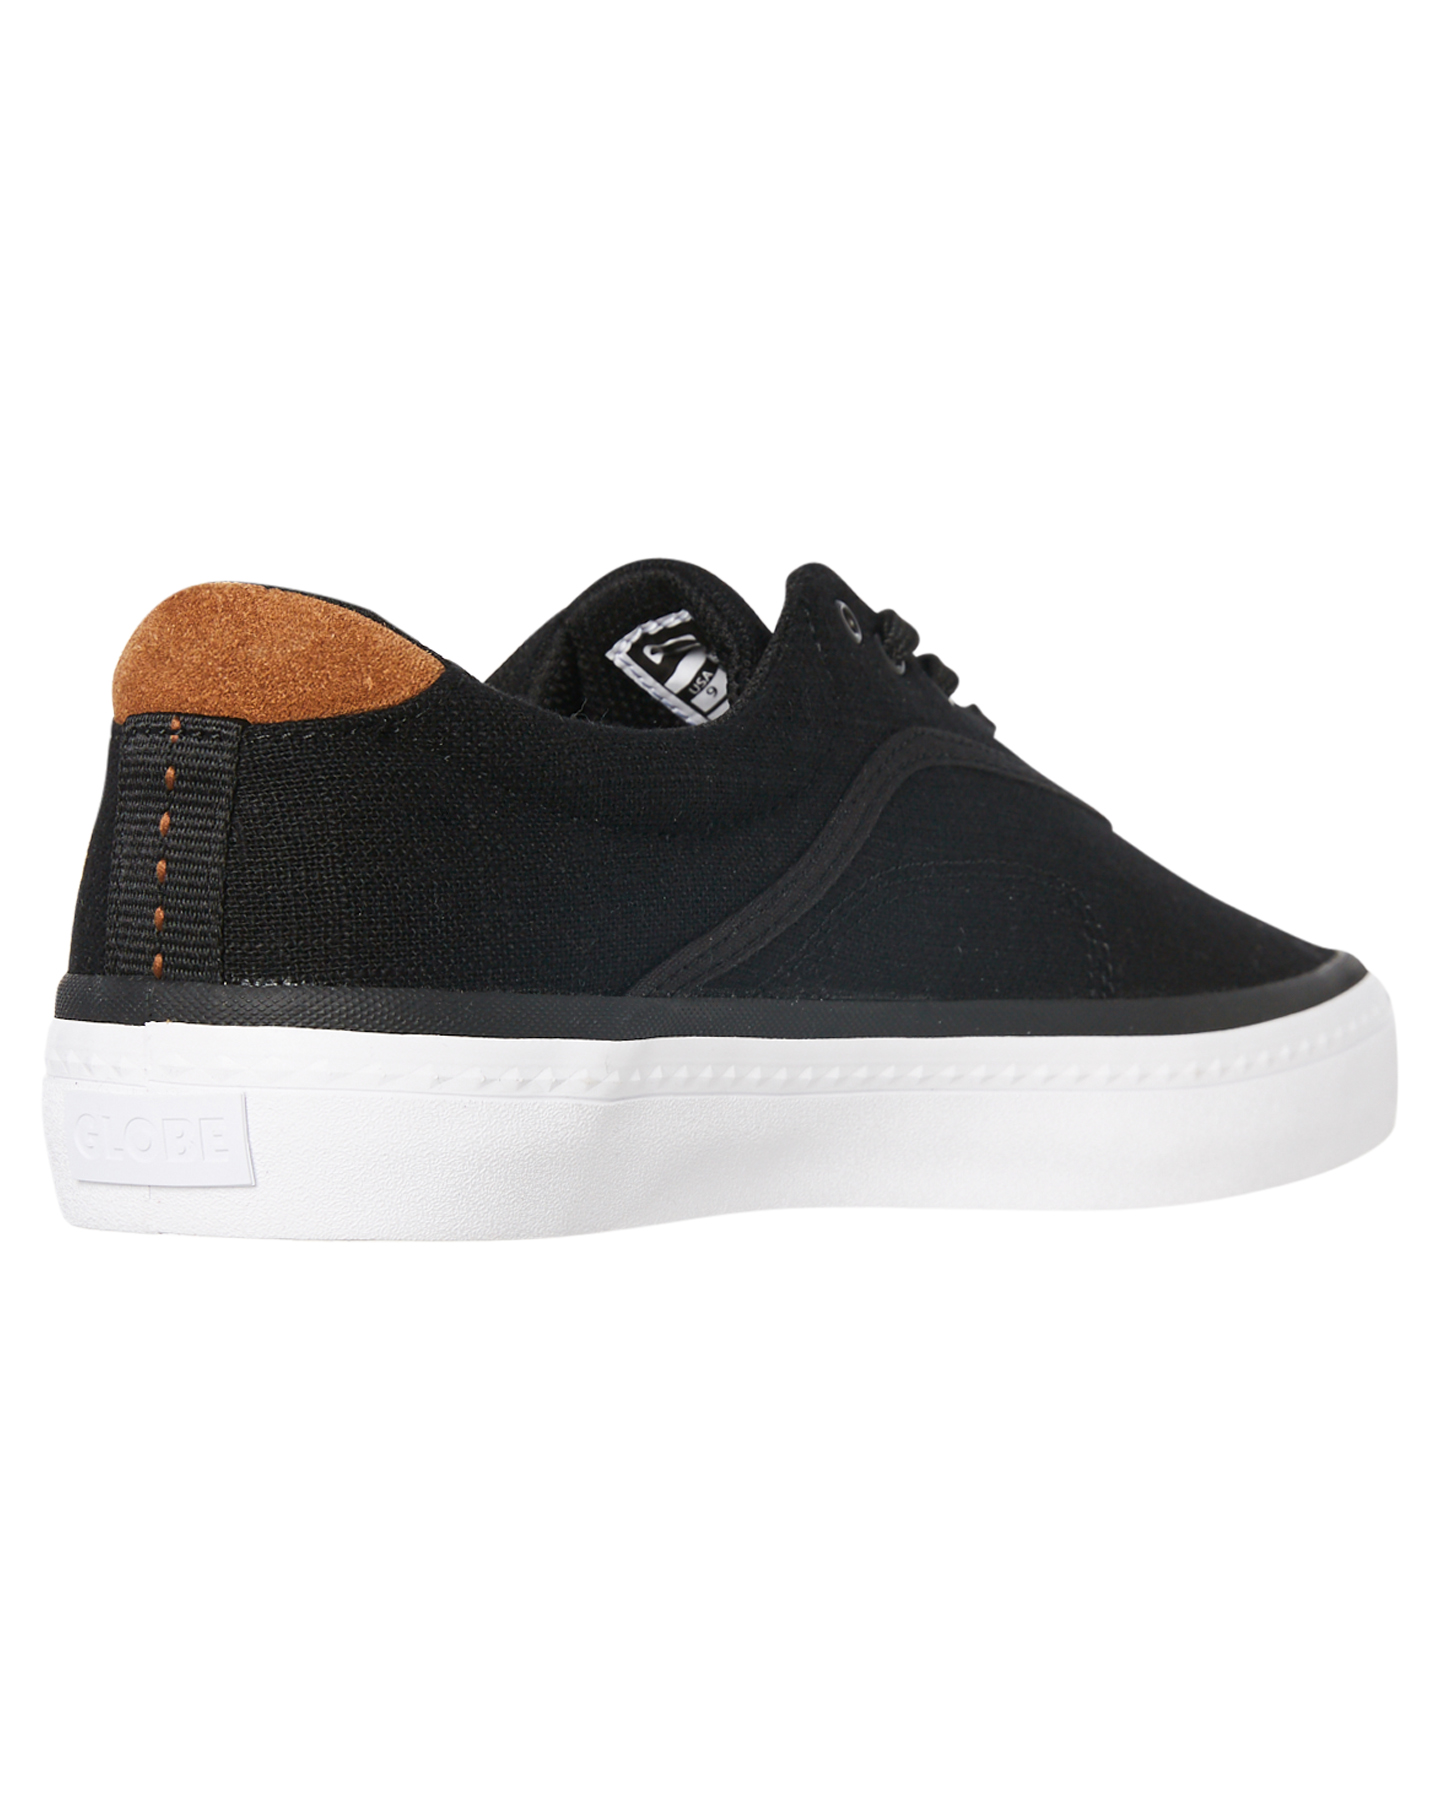 New-Globe-Skate-Men-039-s-Sprout-Suede-Shoe-Lace-Brown